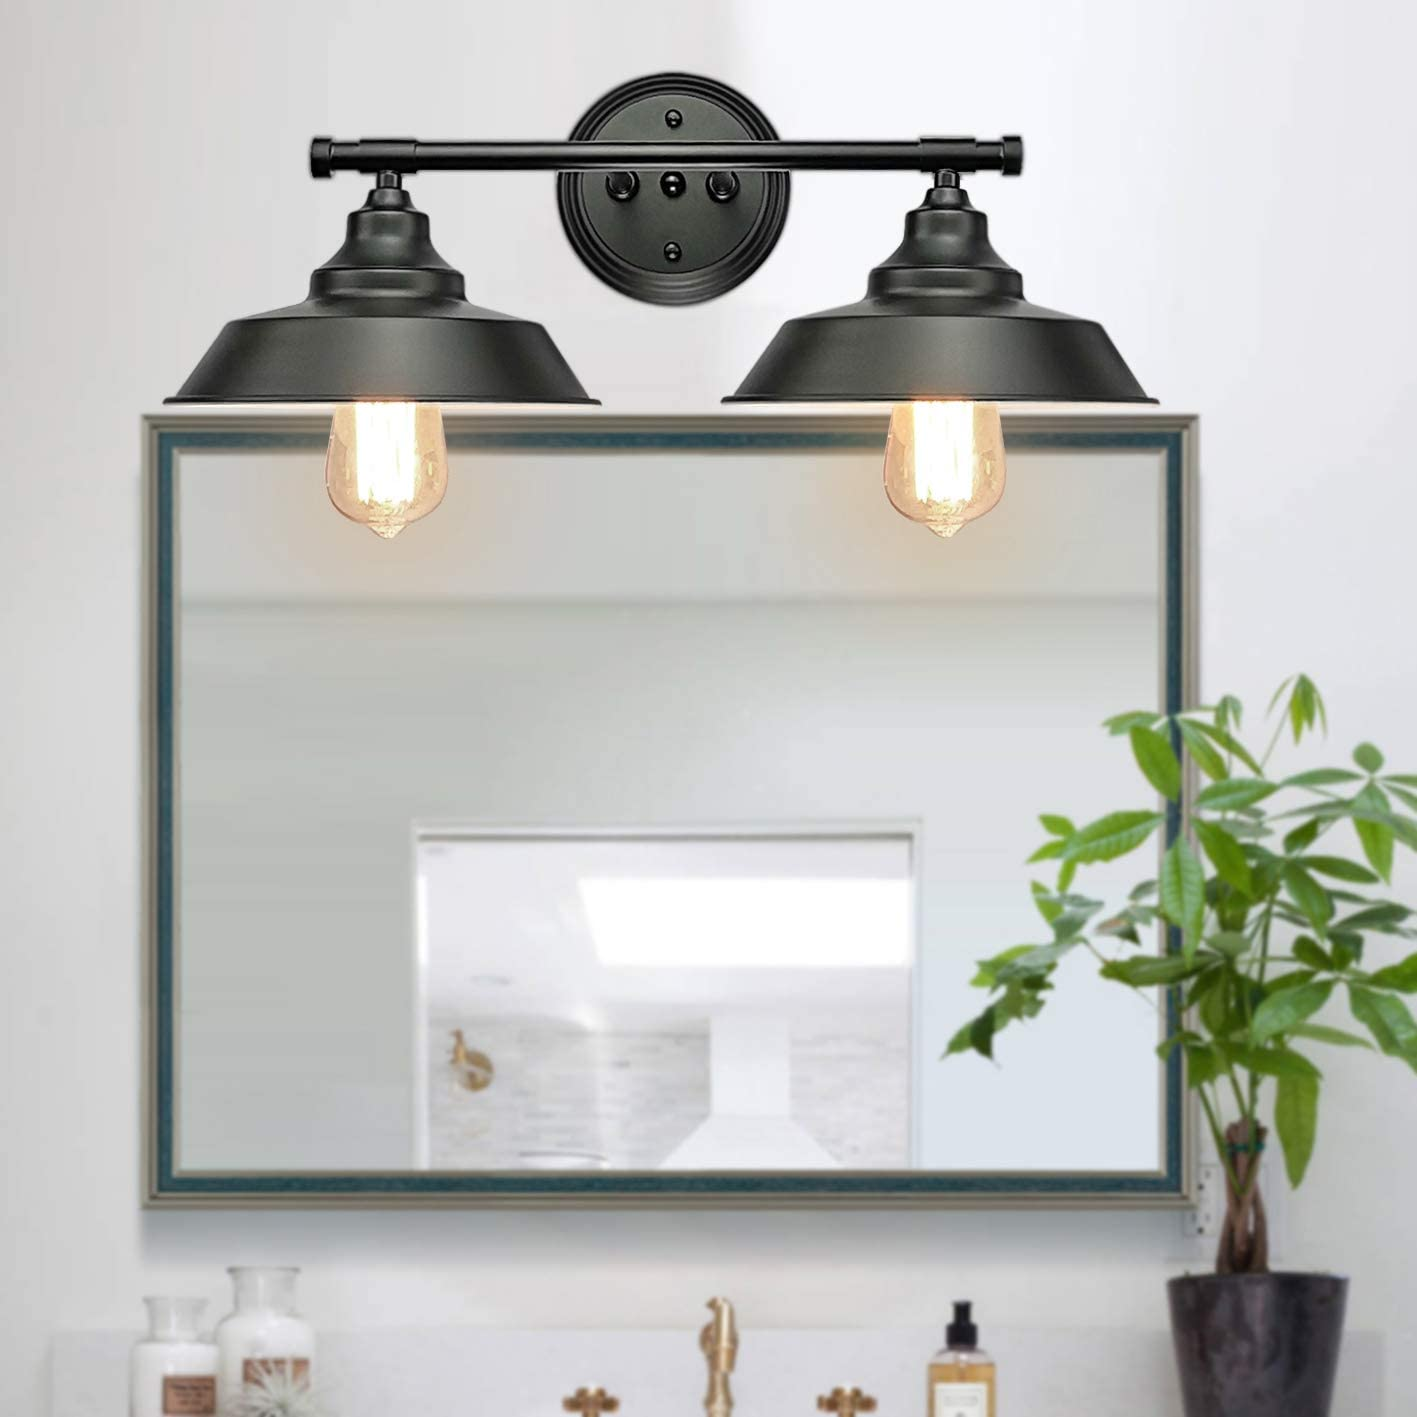 GOODYI 2-Lights Vanity Wall Sconce Style Lighting At the price Matte Rustic Max 41% OFF